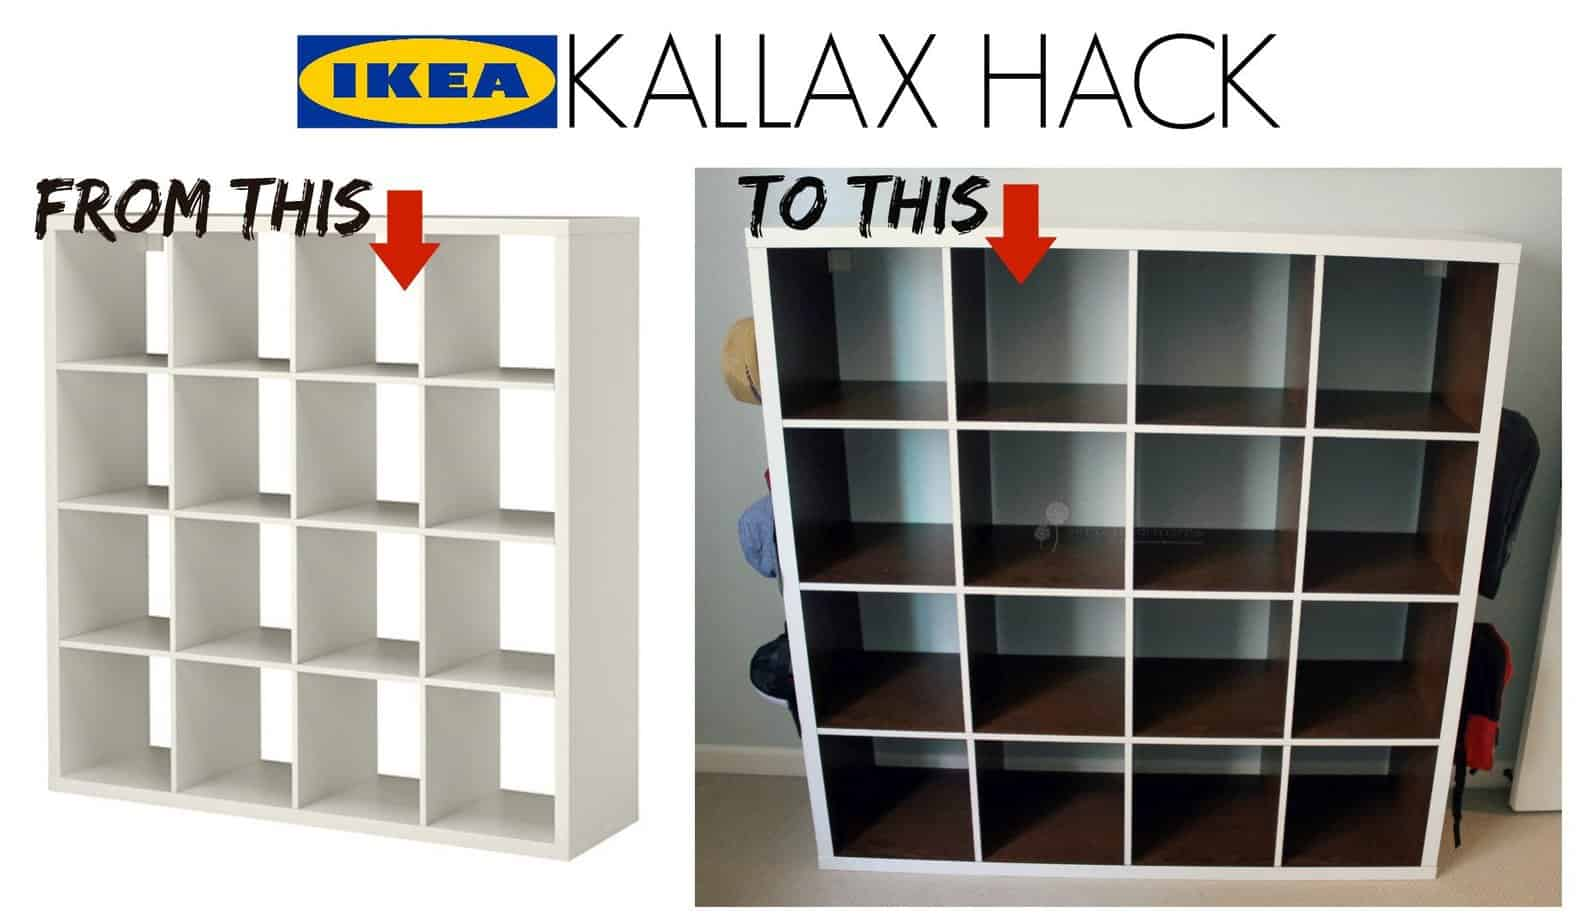 ikea kallax hack - simply real moms